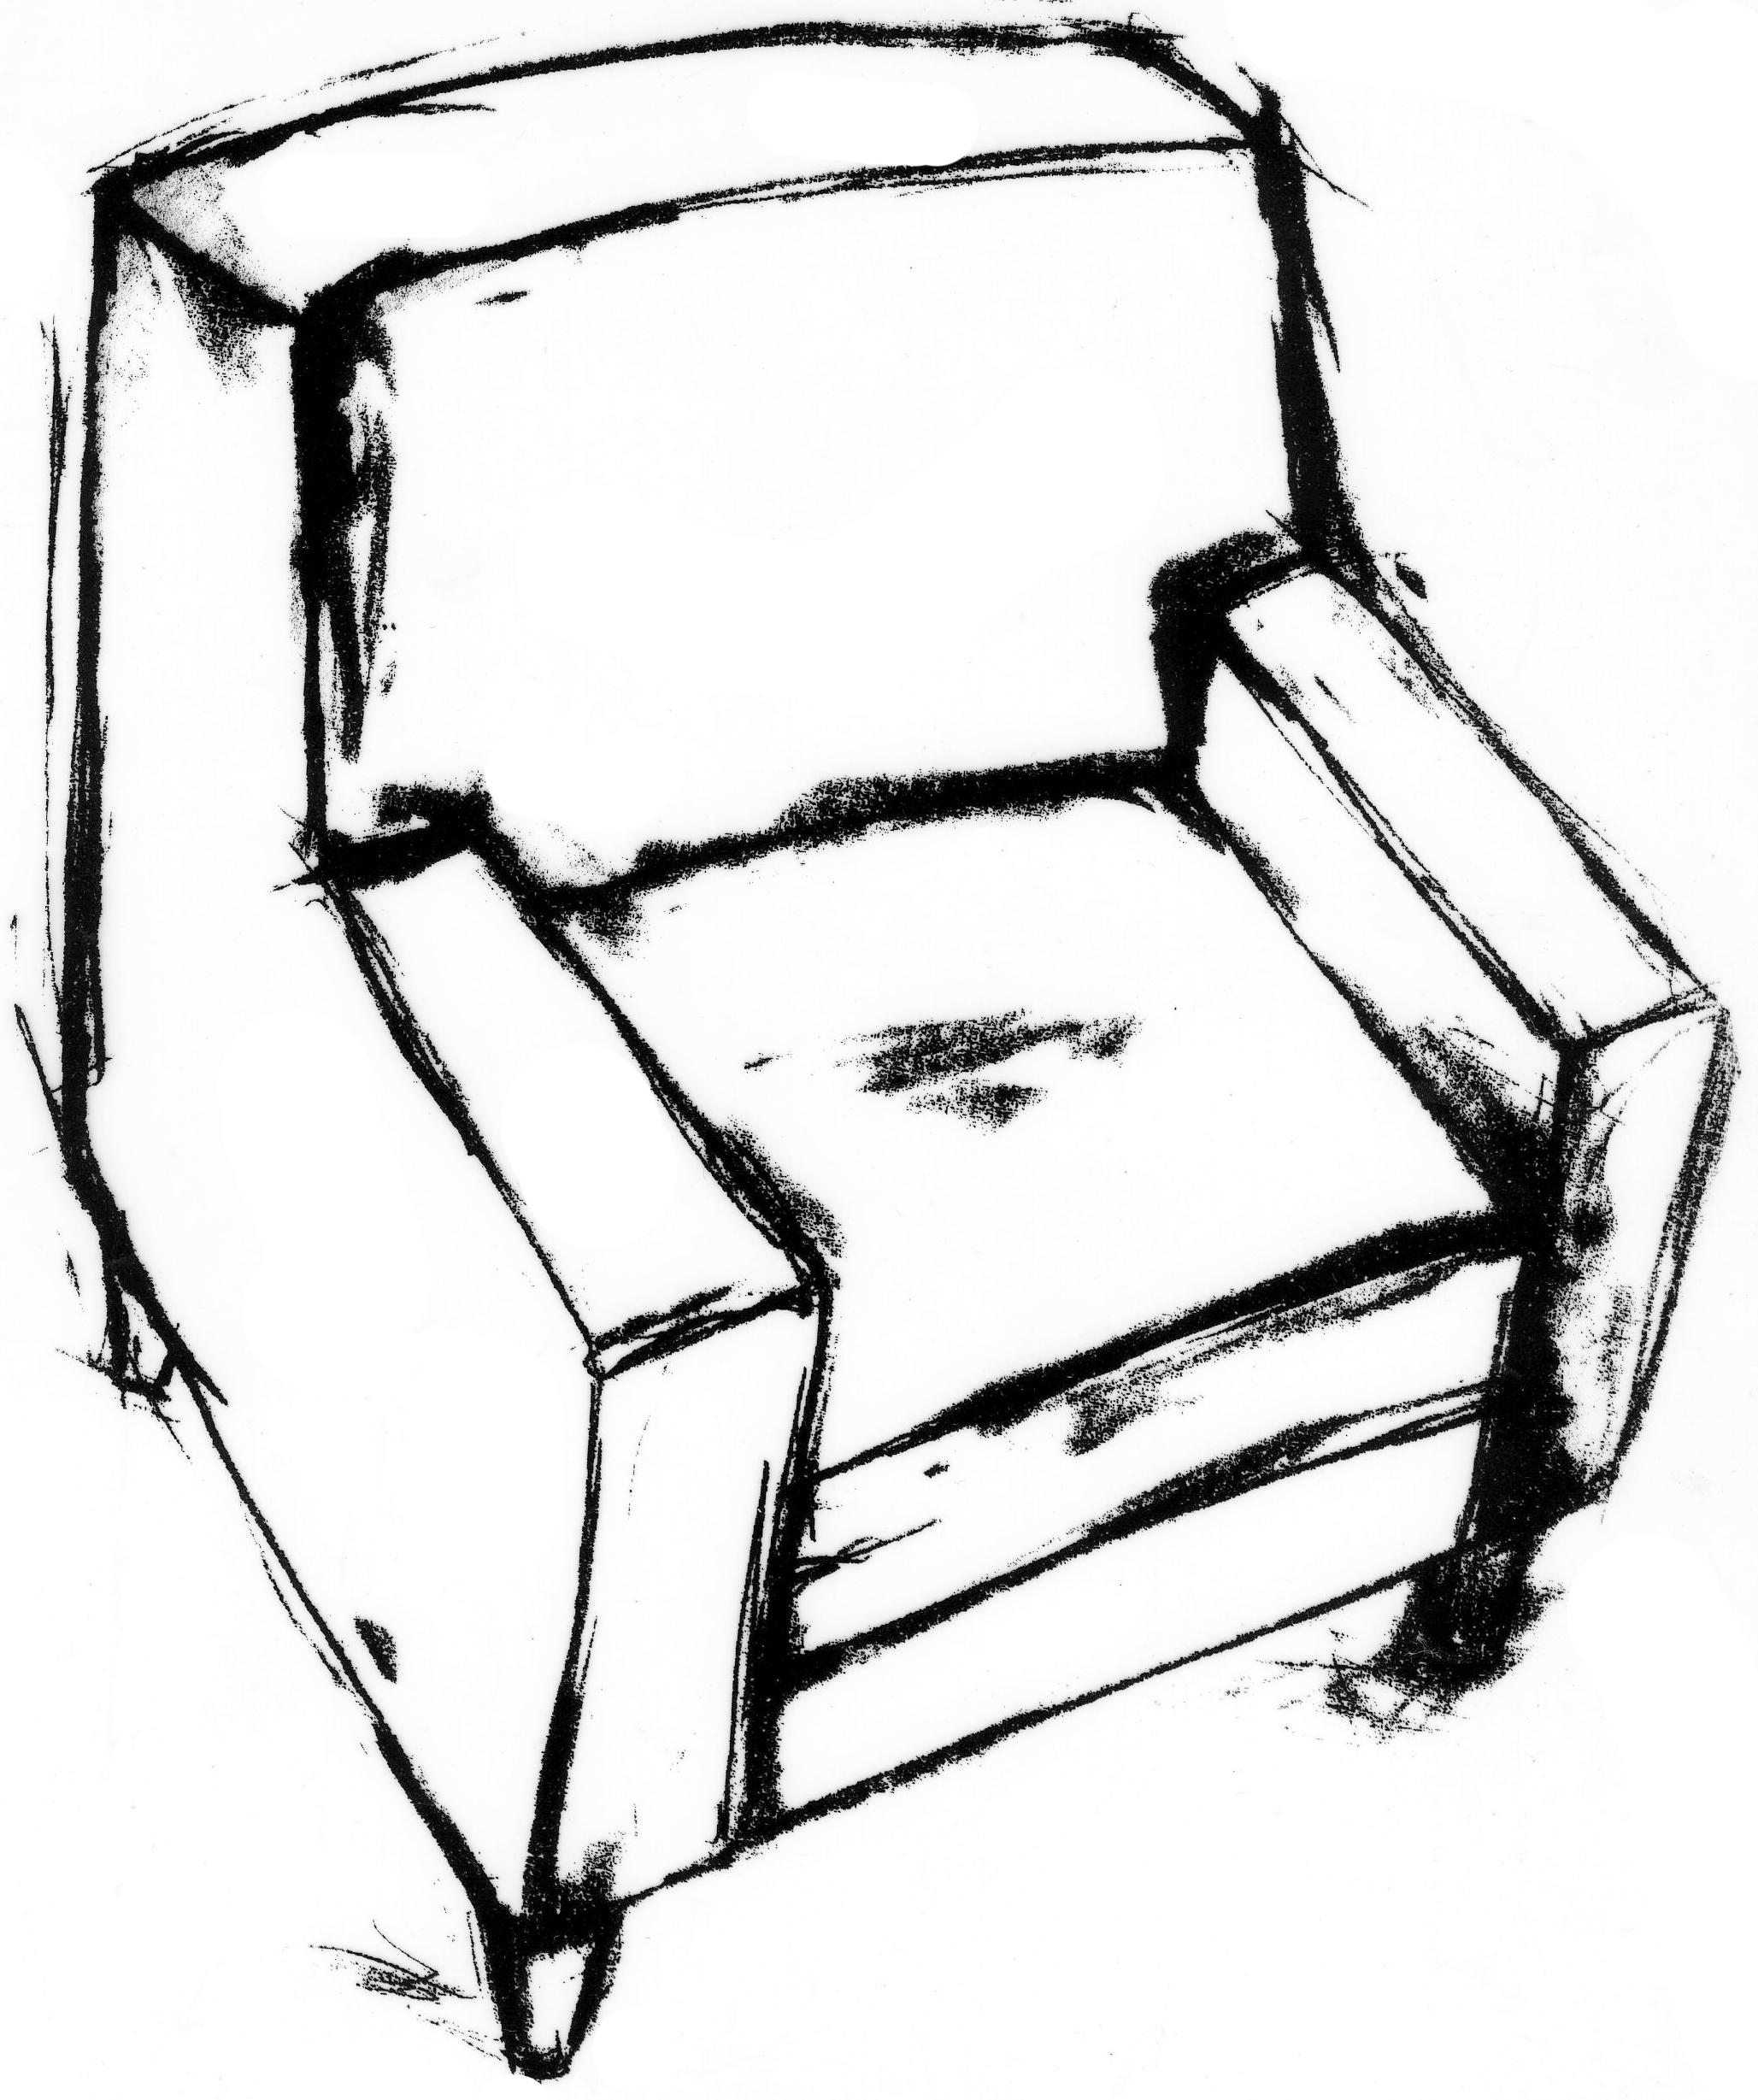 8_chair1_mylar_8x7.jpg